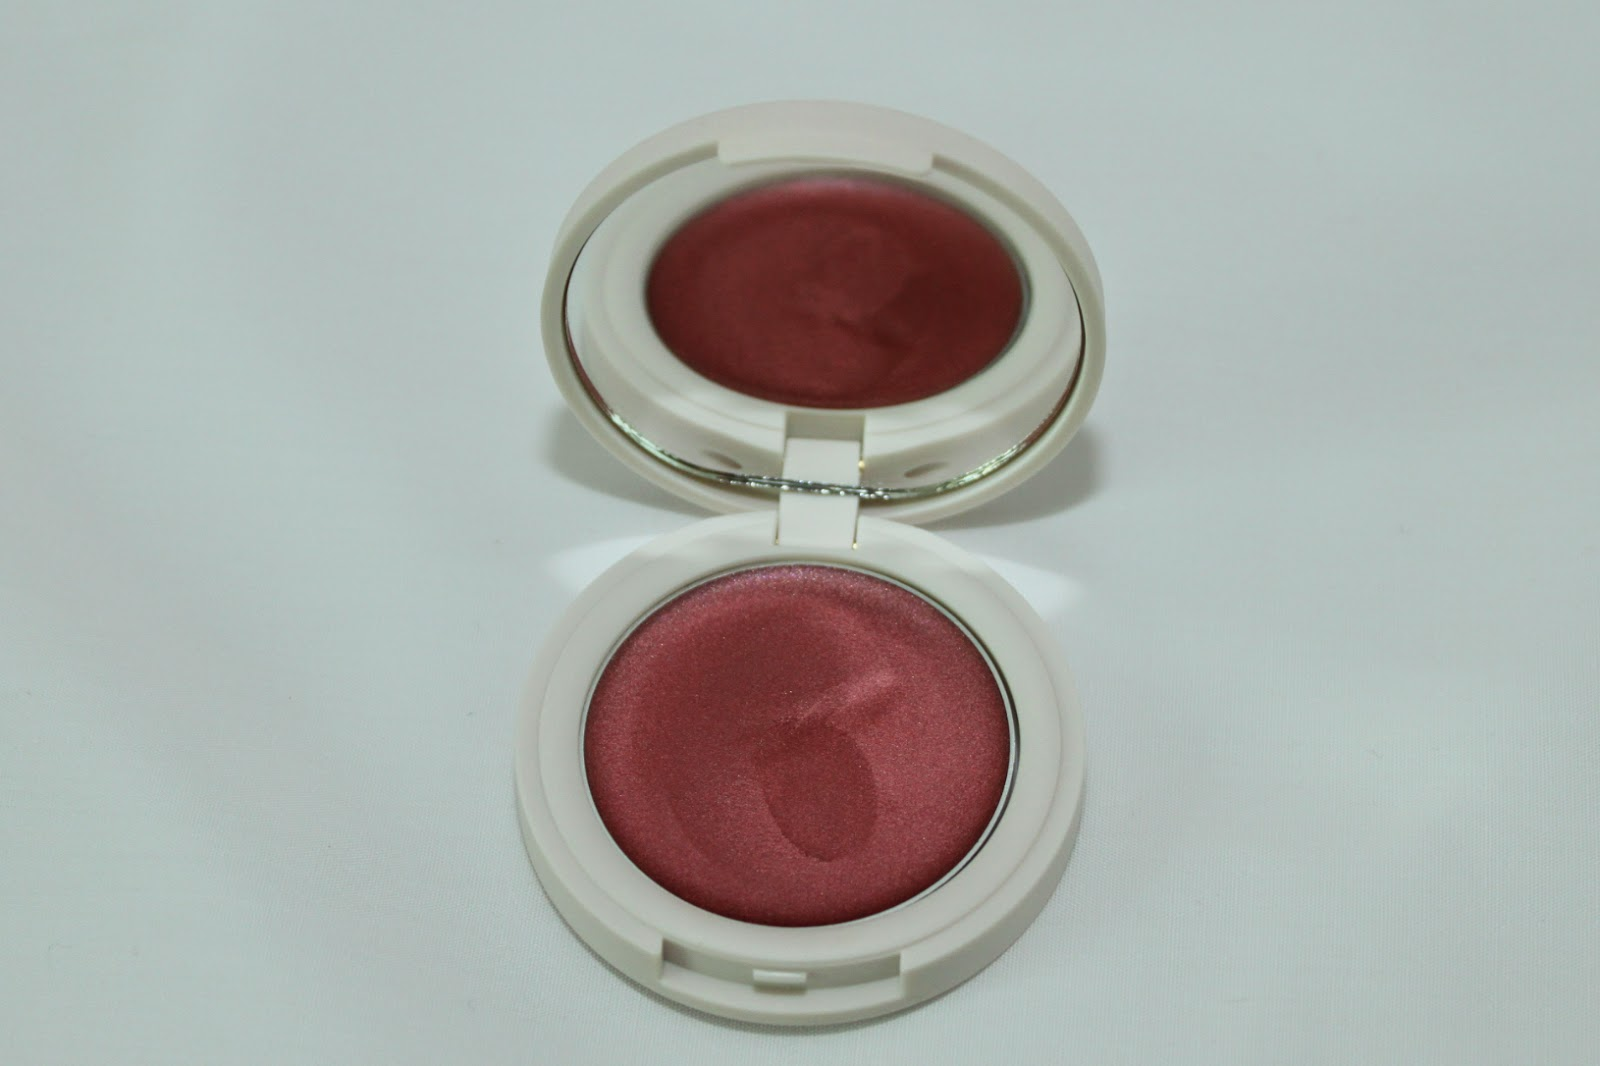 TOPSHOP METALLIC CREAM BLUSH - AORTA